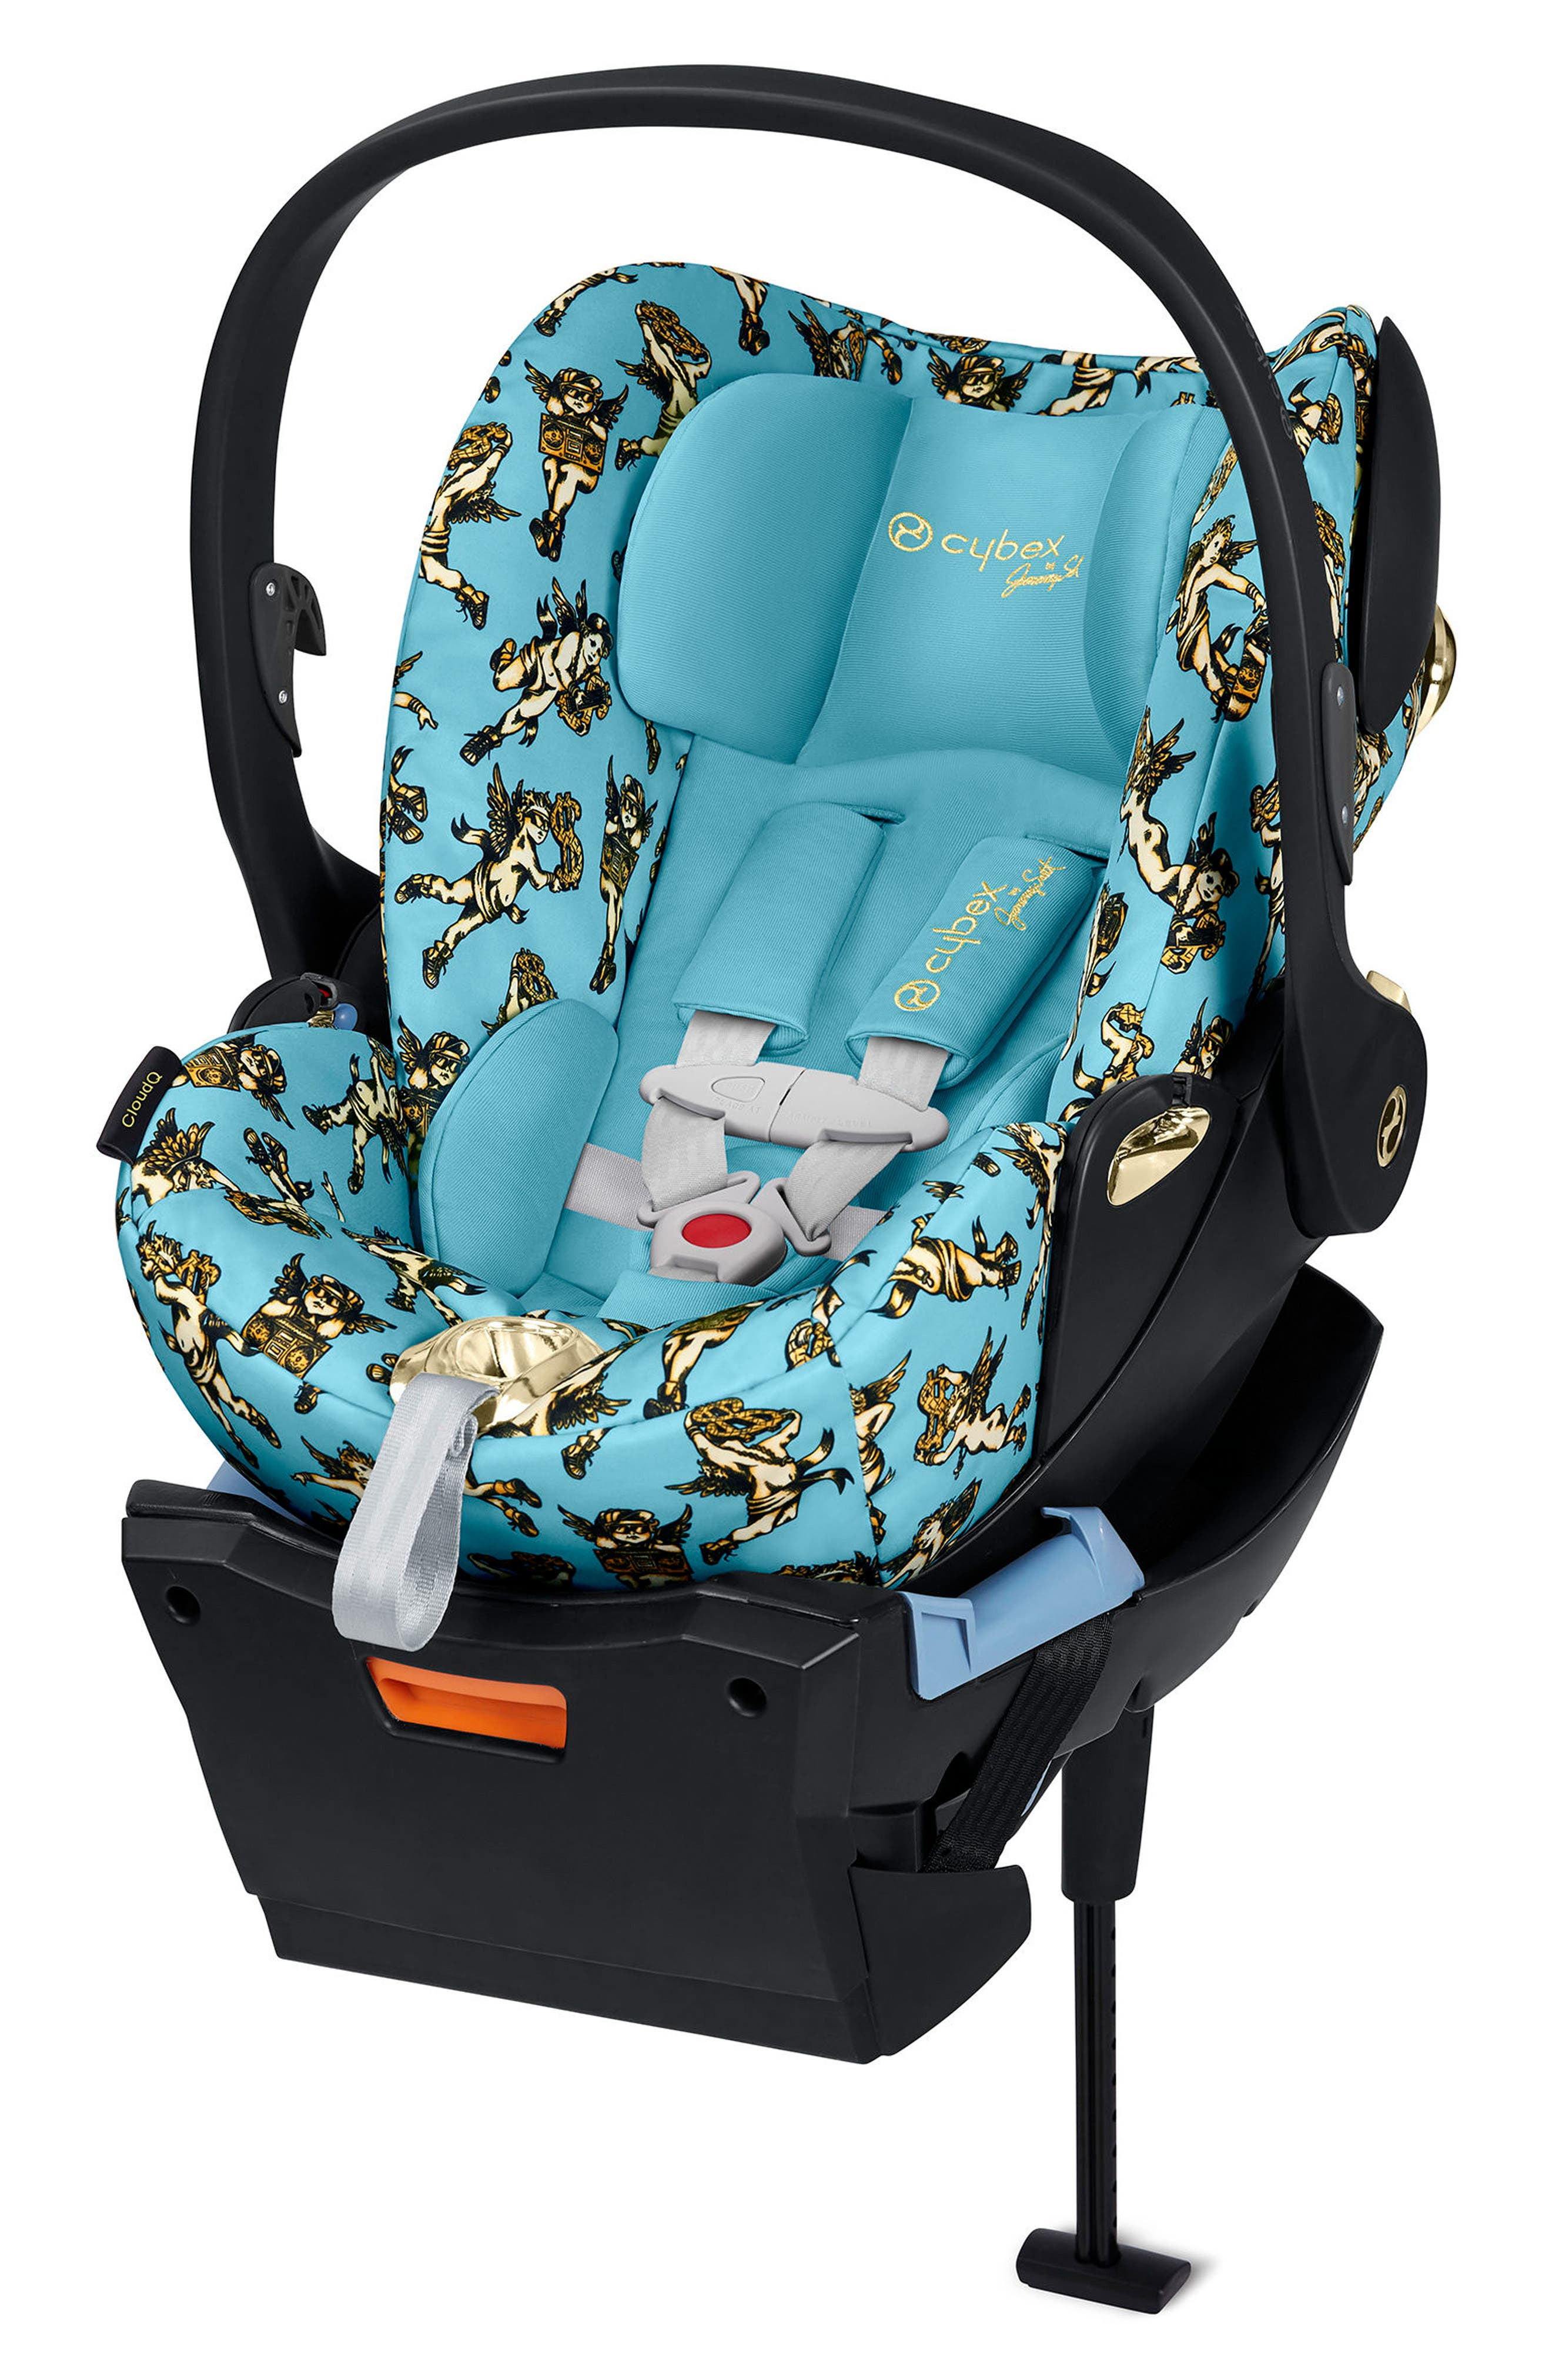 Infant Cybex X Jeremy Scott Cherubs Cloud Q Infant Car Seat  Base Size One Size  Blue